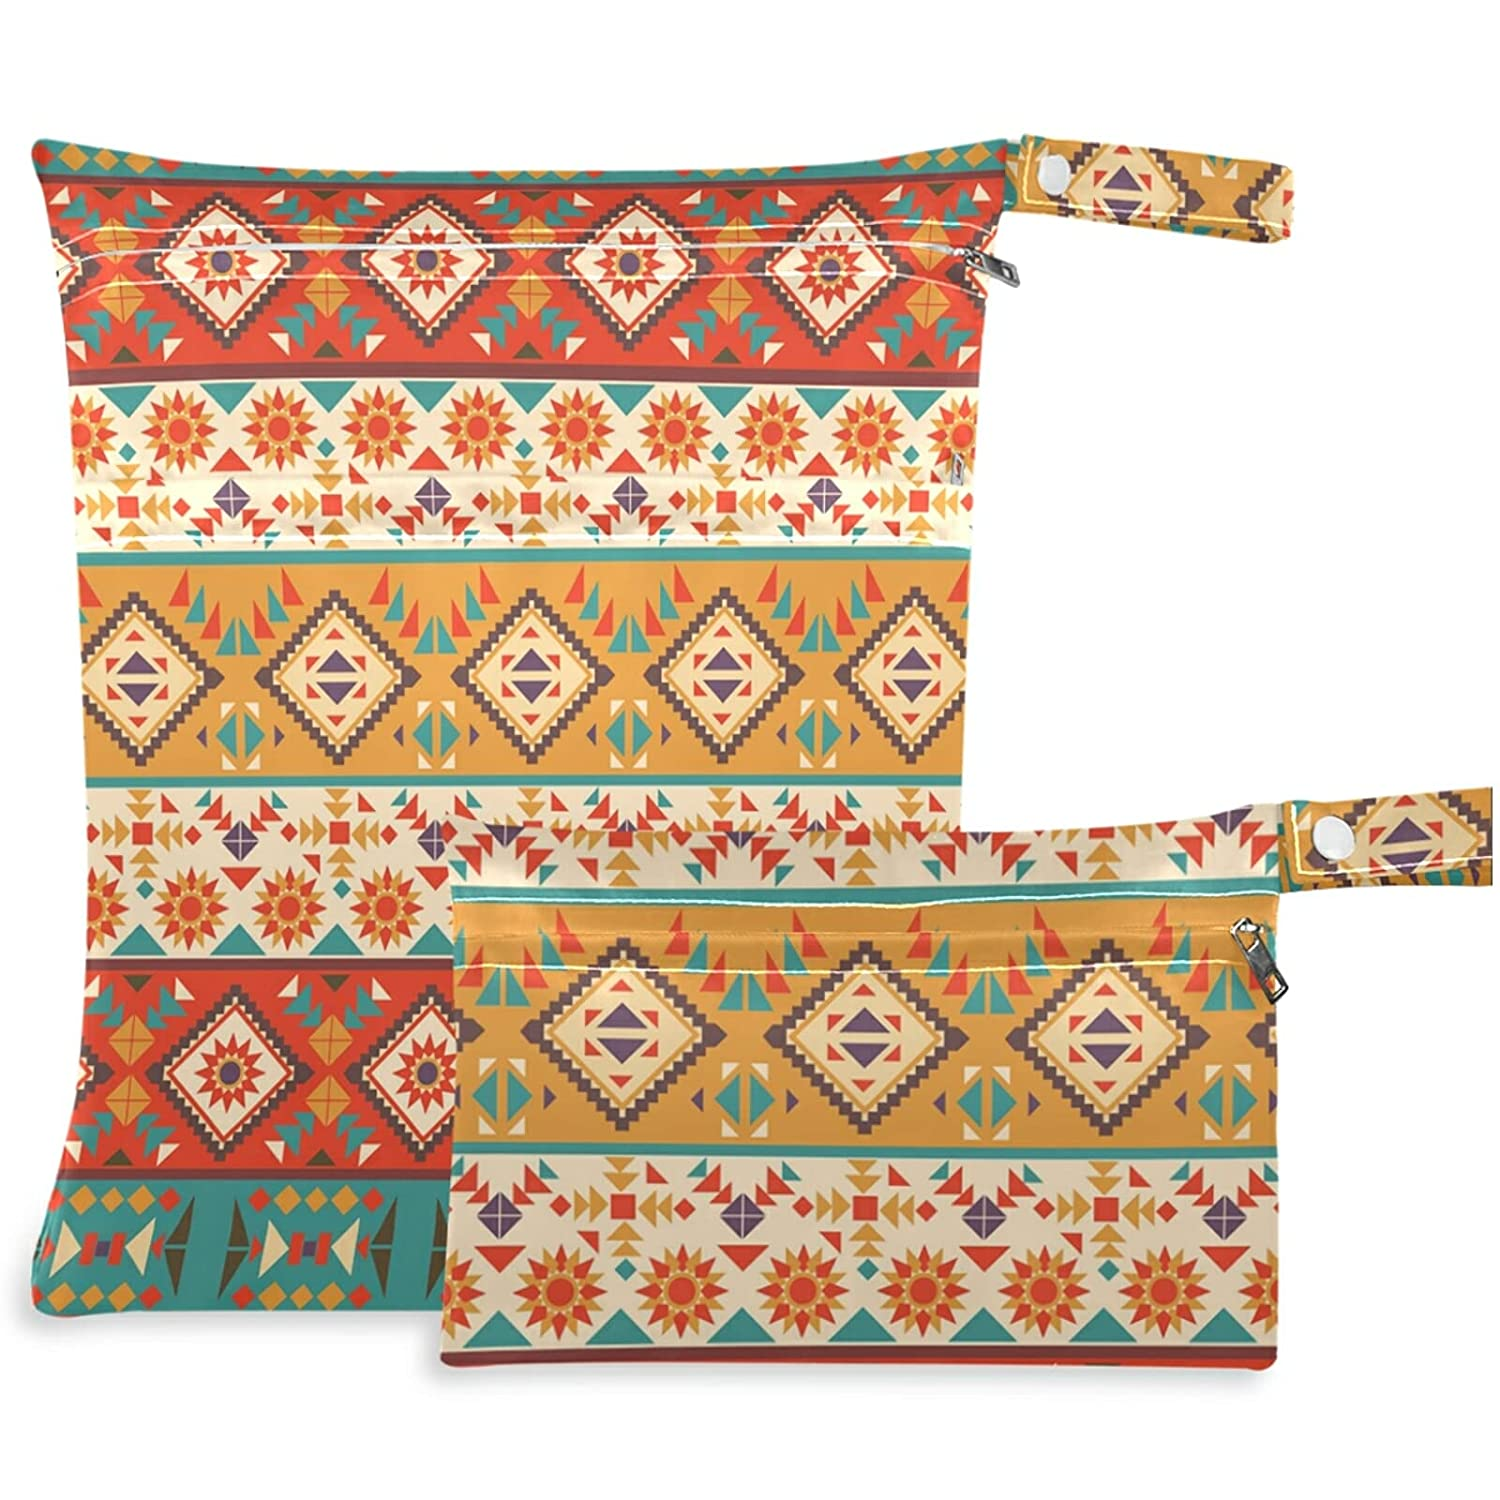 visesunny Colorful Navajo Pattern 2Pcs Under blast sales Bag New Shipping Free Wet with Poc Zippered